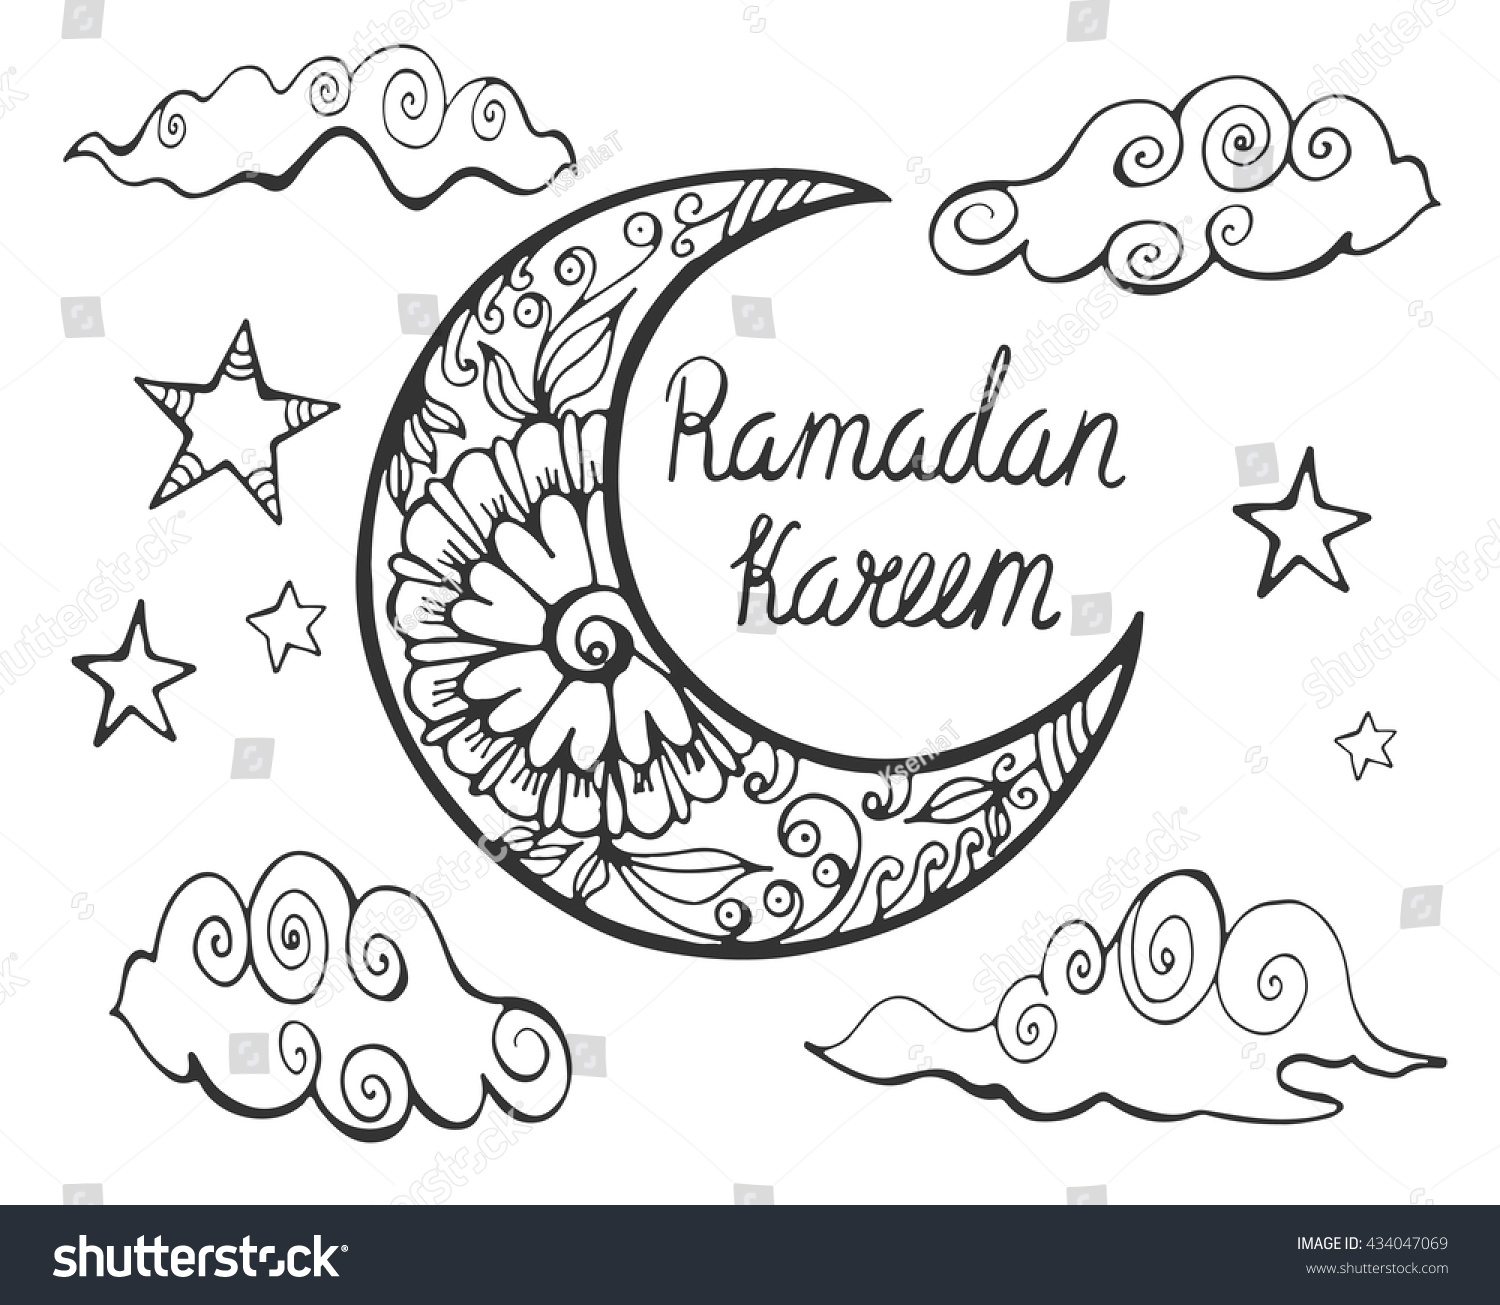 Coloring pages ramadan - Ramadan Kareem Theme Hand Drawn Vector Illustration With Crescent Clouds Stars And Lettering